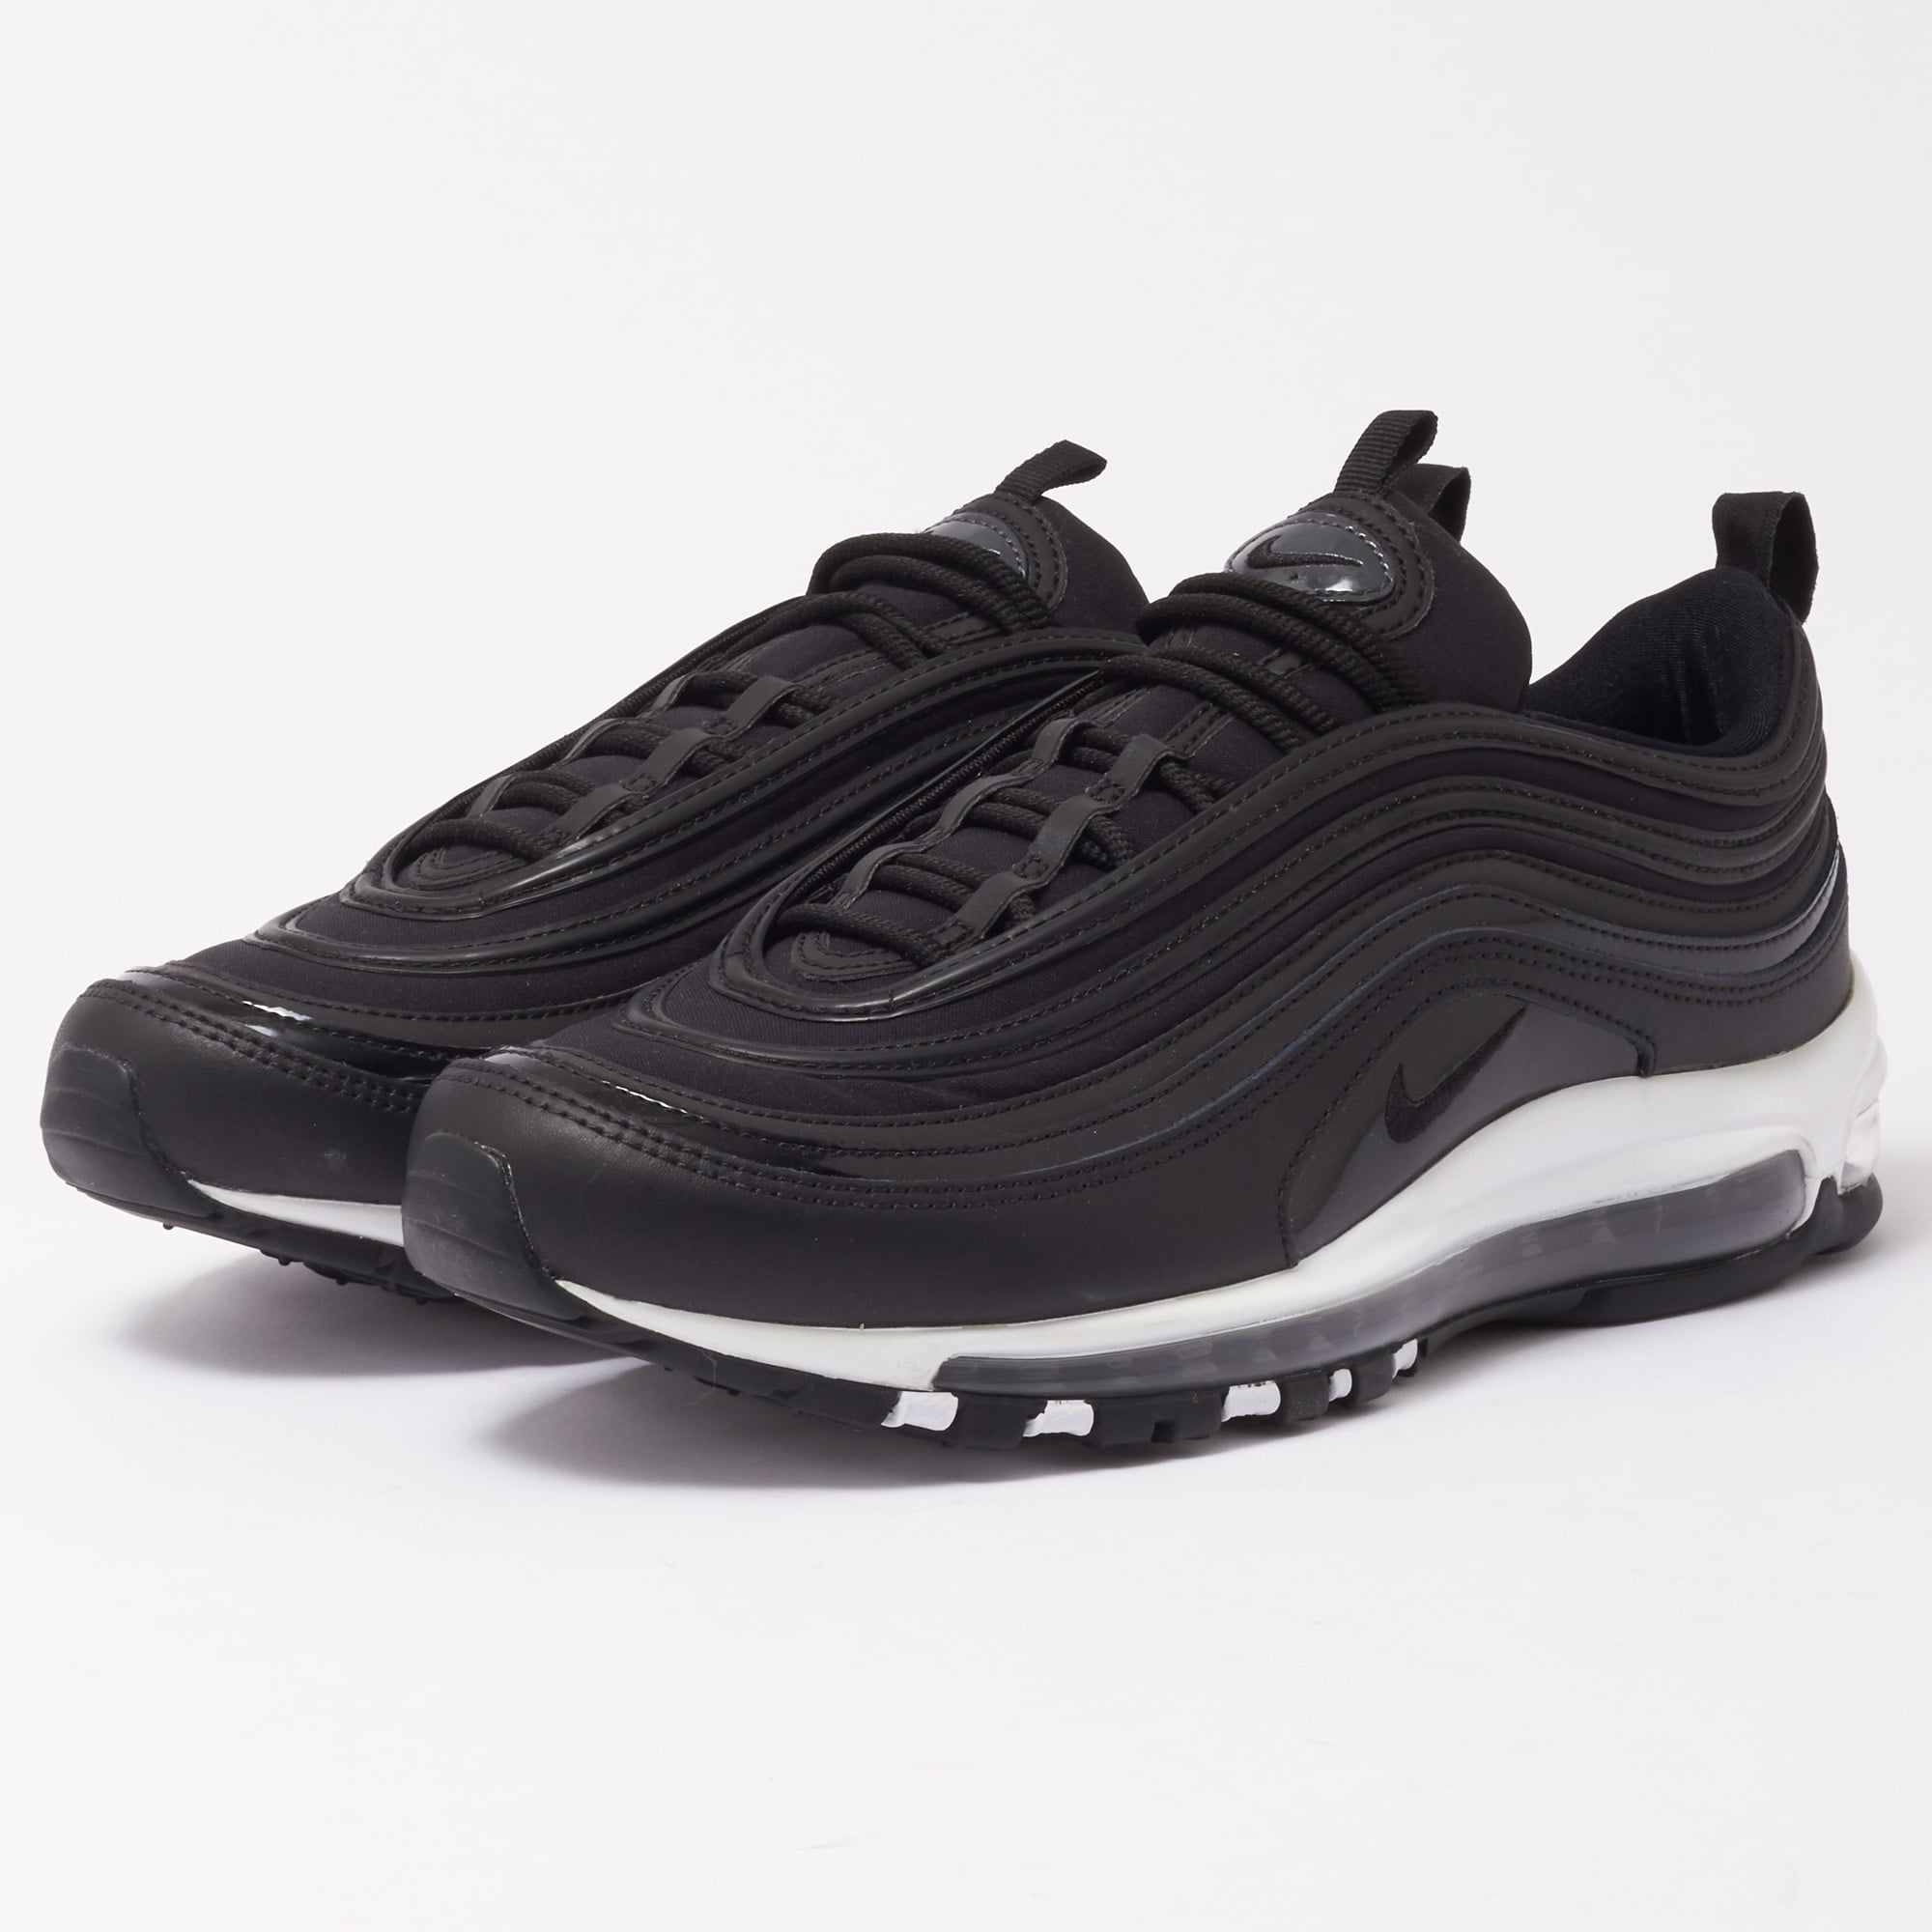 air max 97 premium anniversary nz